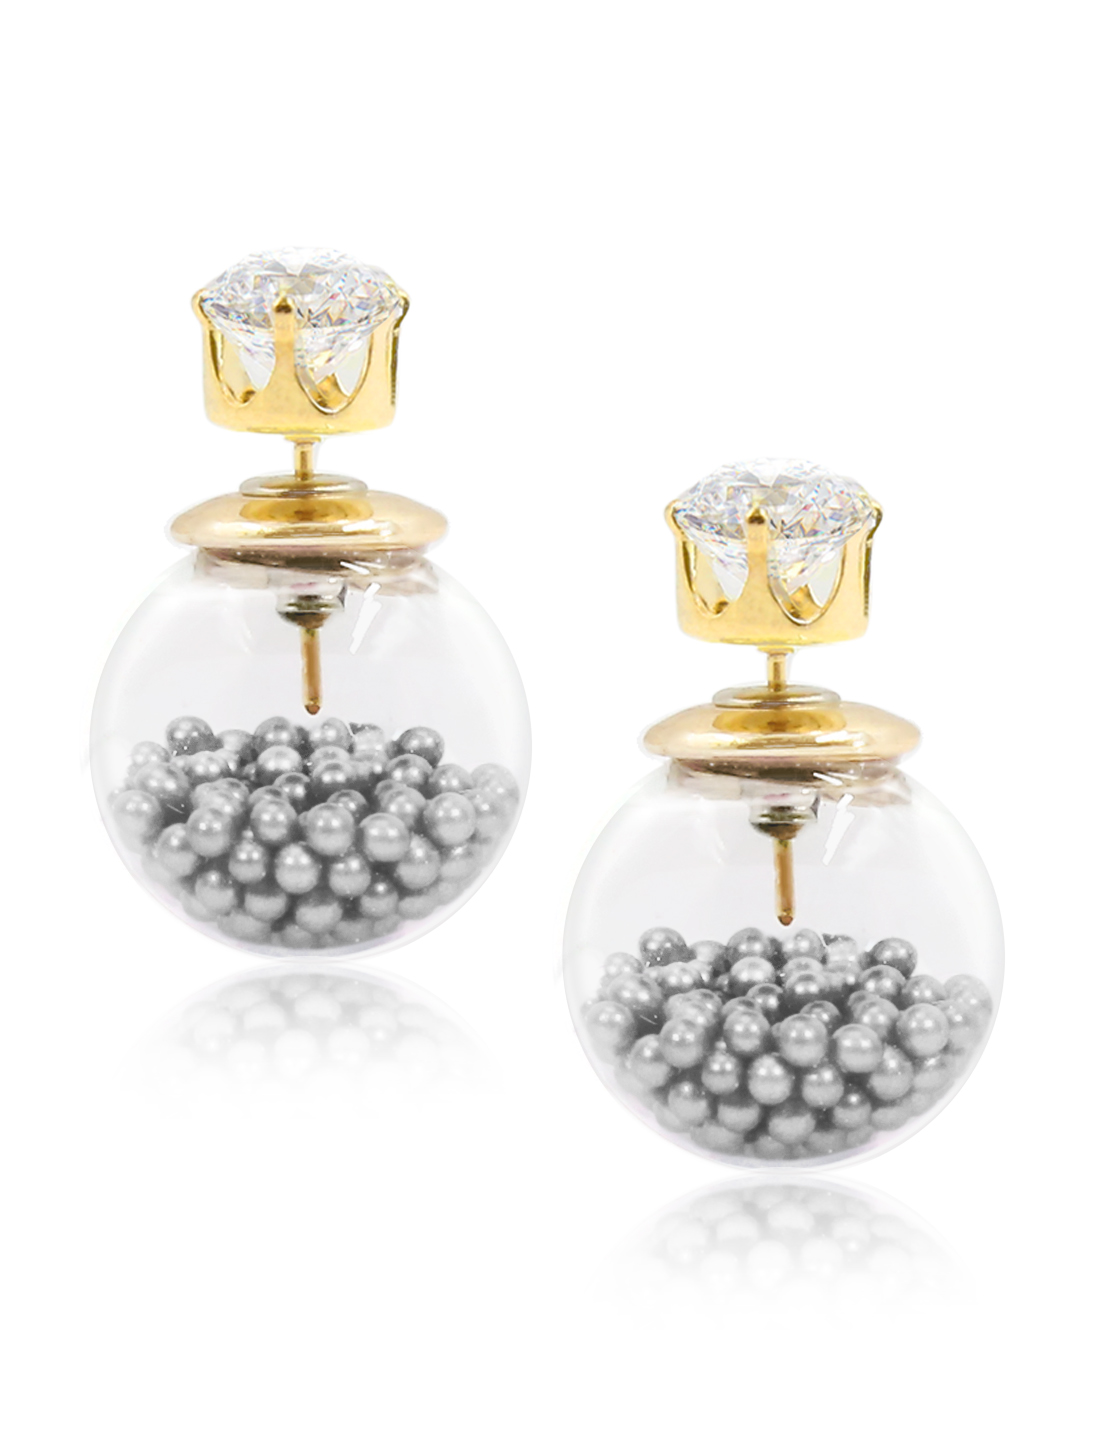 Fashion Women Elegant Double Sides Zircon Transparent Ball Faux Crystal Earrings Ear Stud 1 Pair Gray